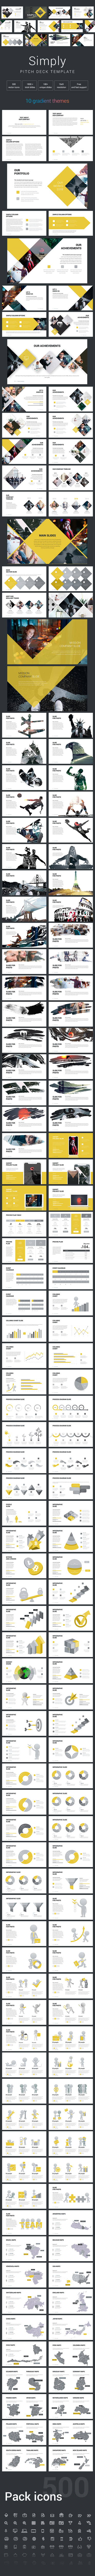 Simply Pitch Deck Keynote Template - Business Keynote Templates